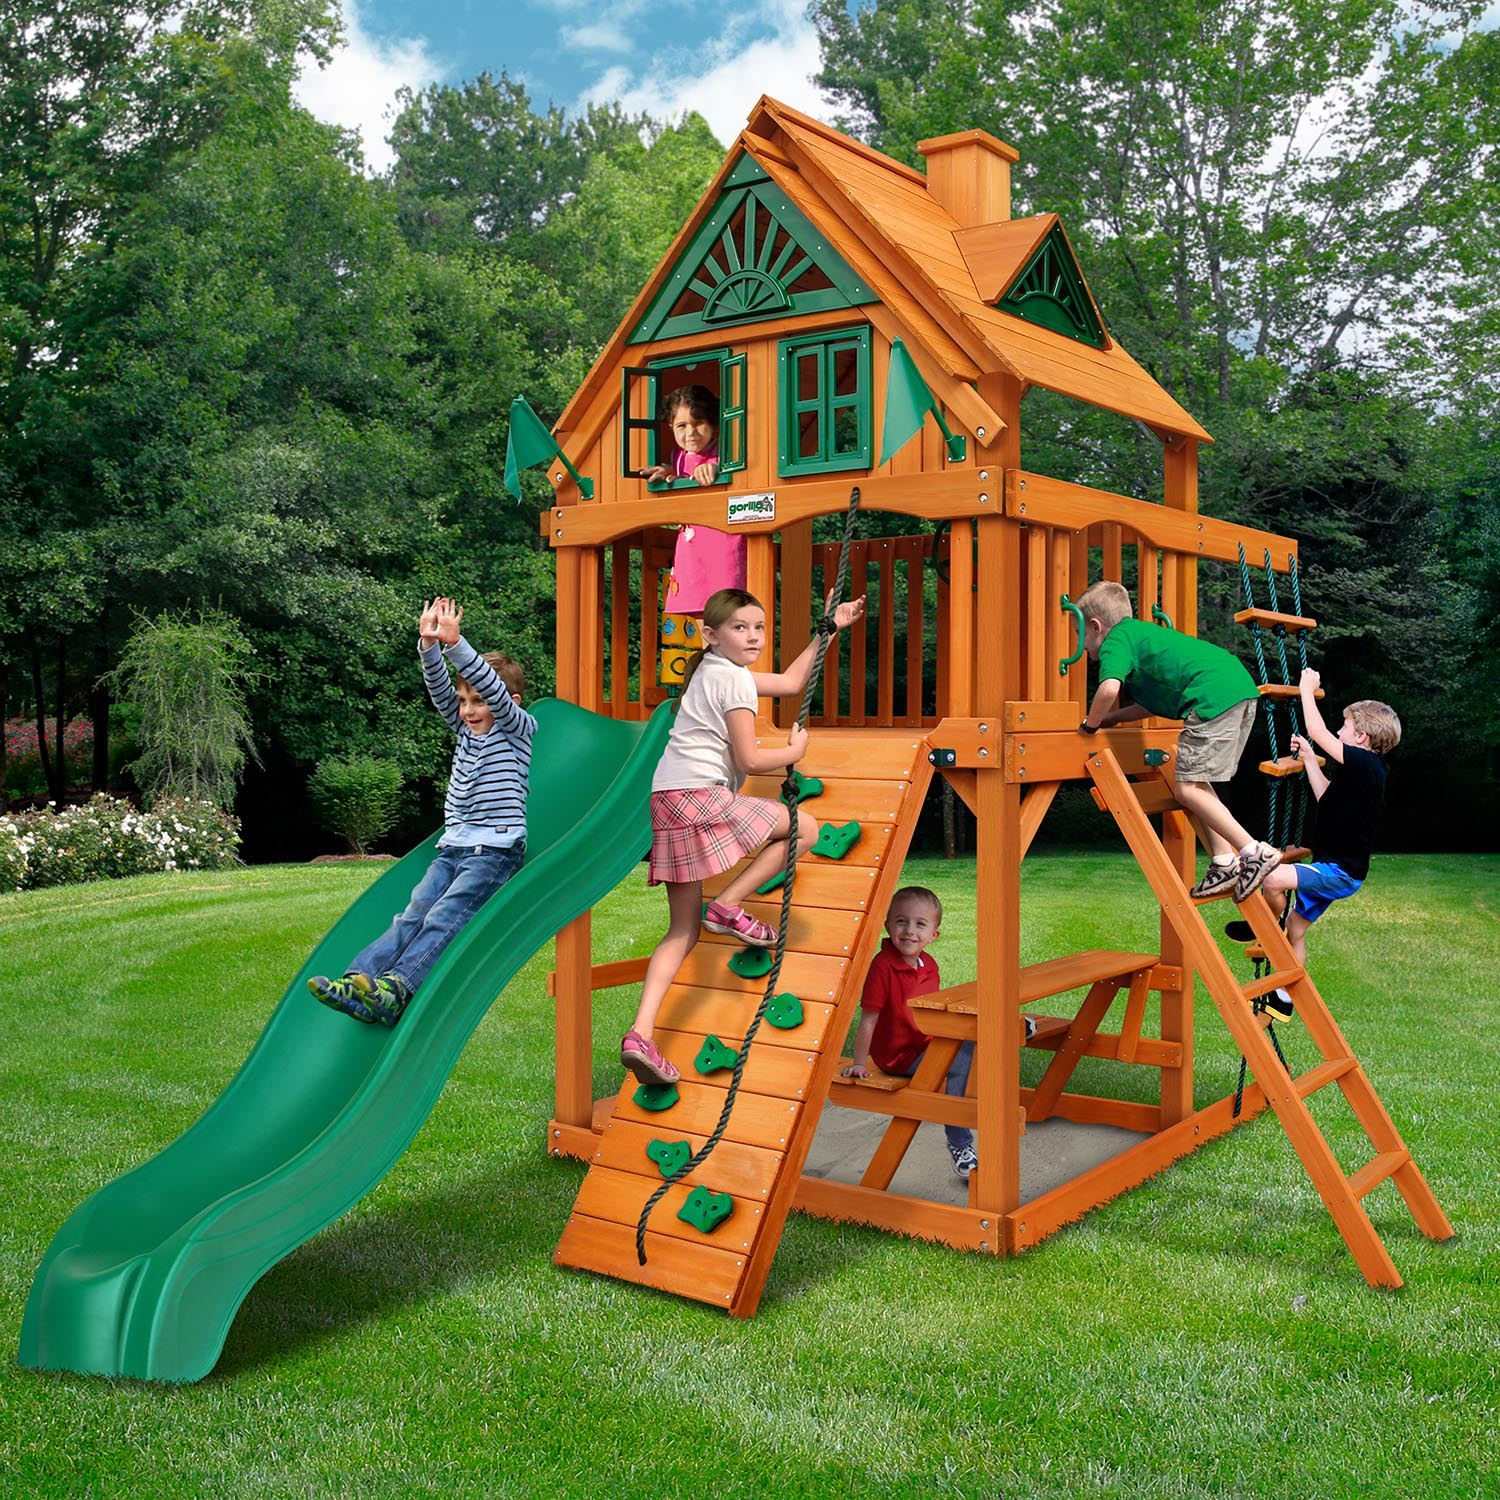 Gorilla Playsets Chateau Tower Treehouse Wooden Swing Set Nj Swingsets